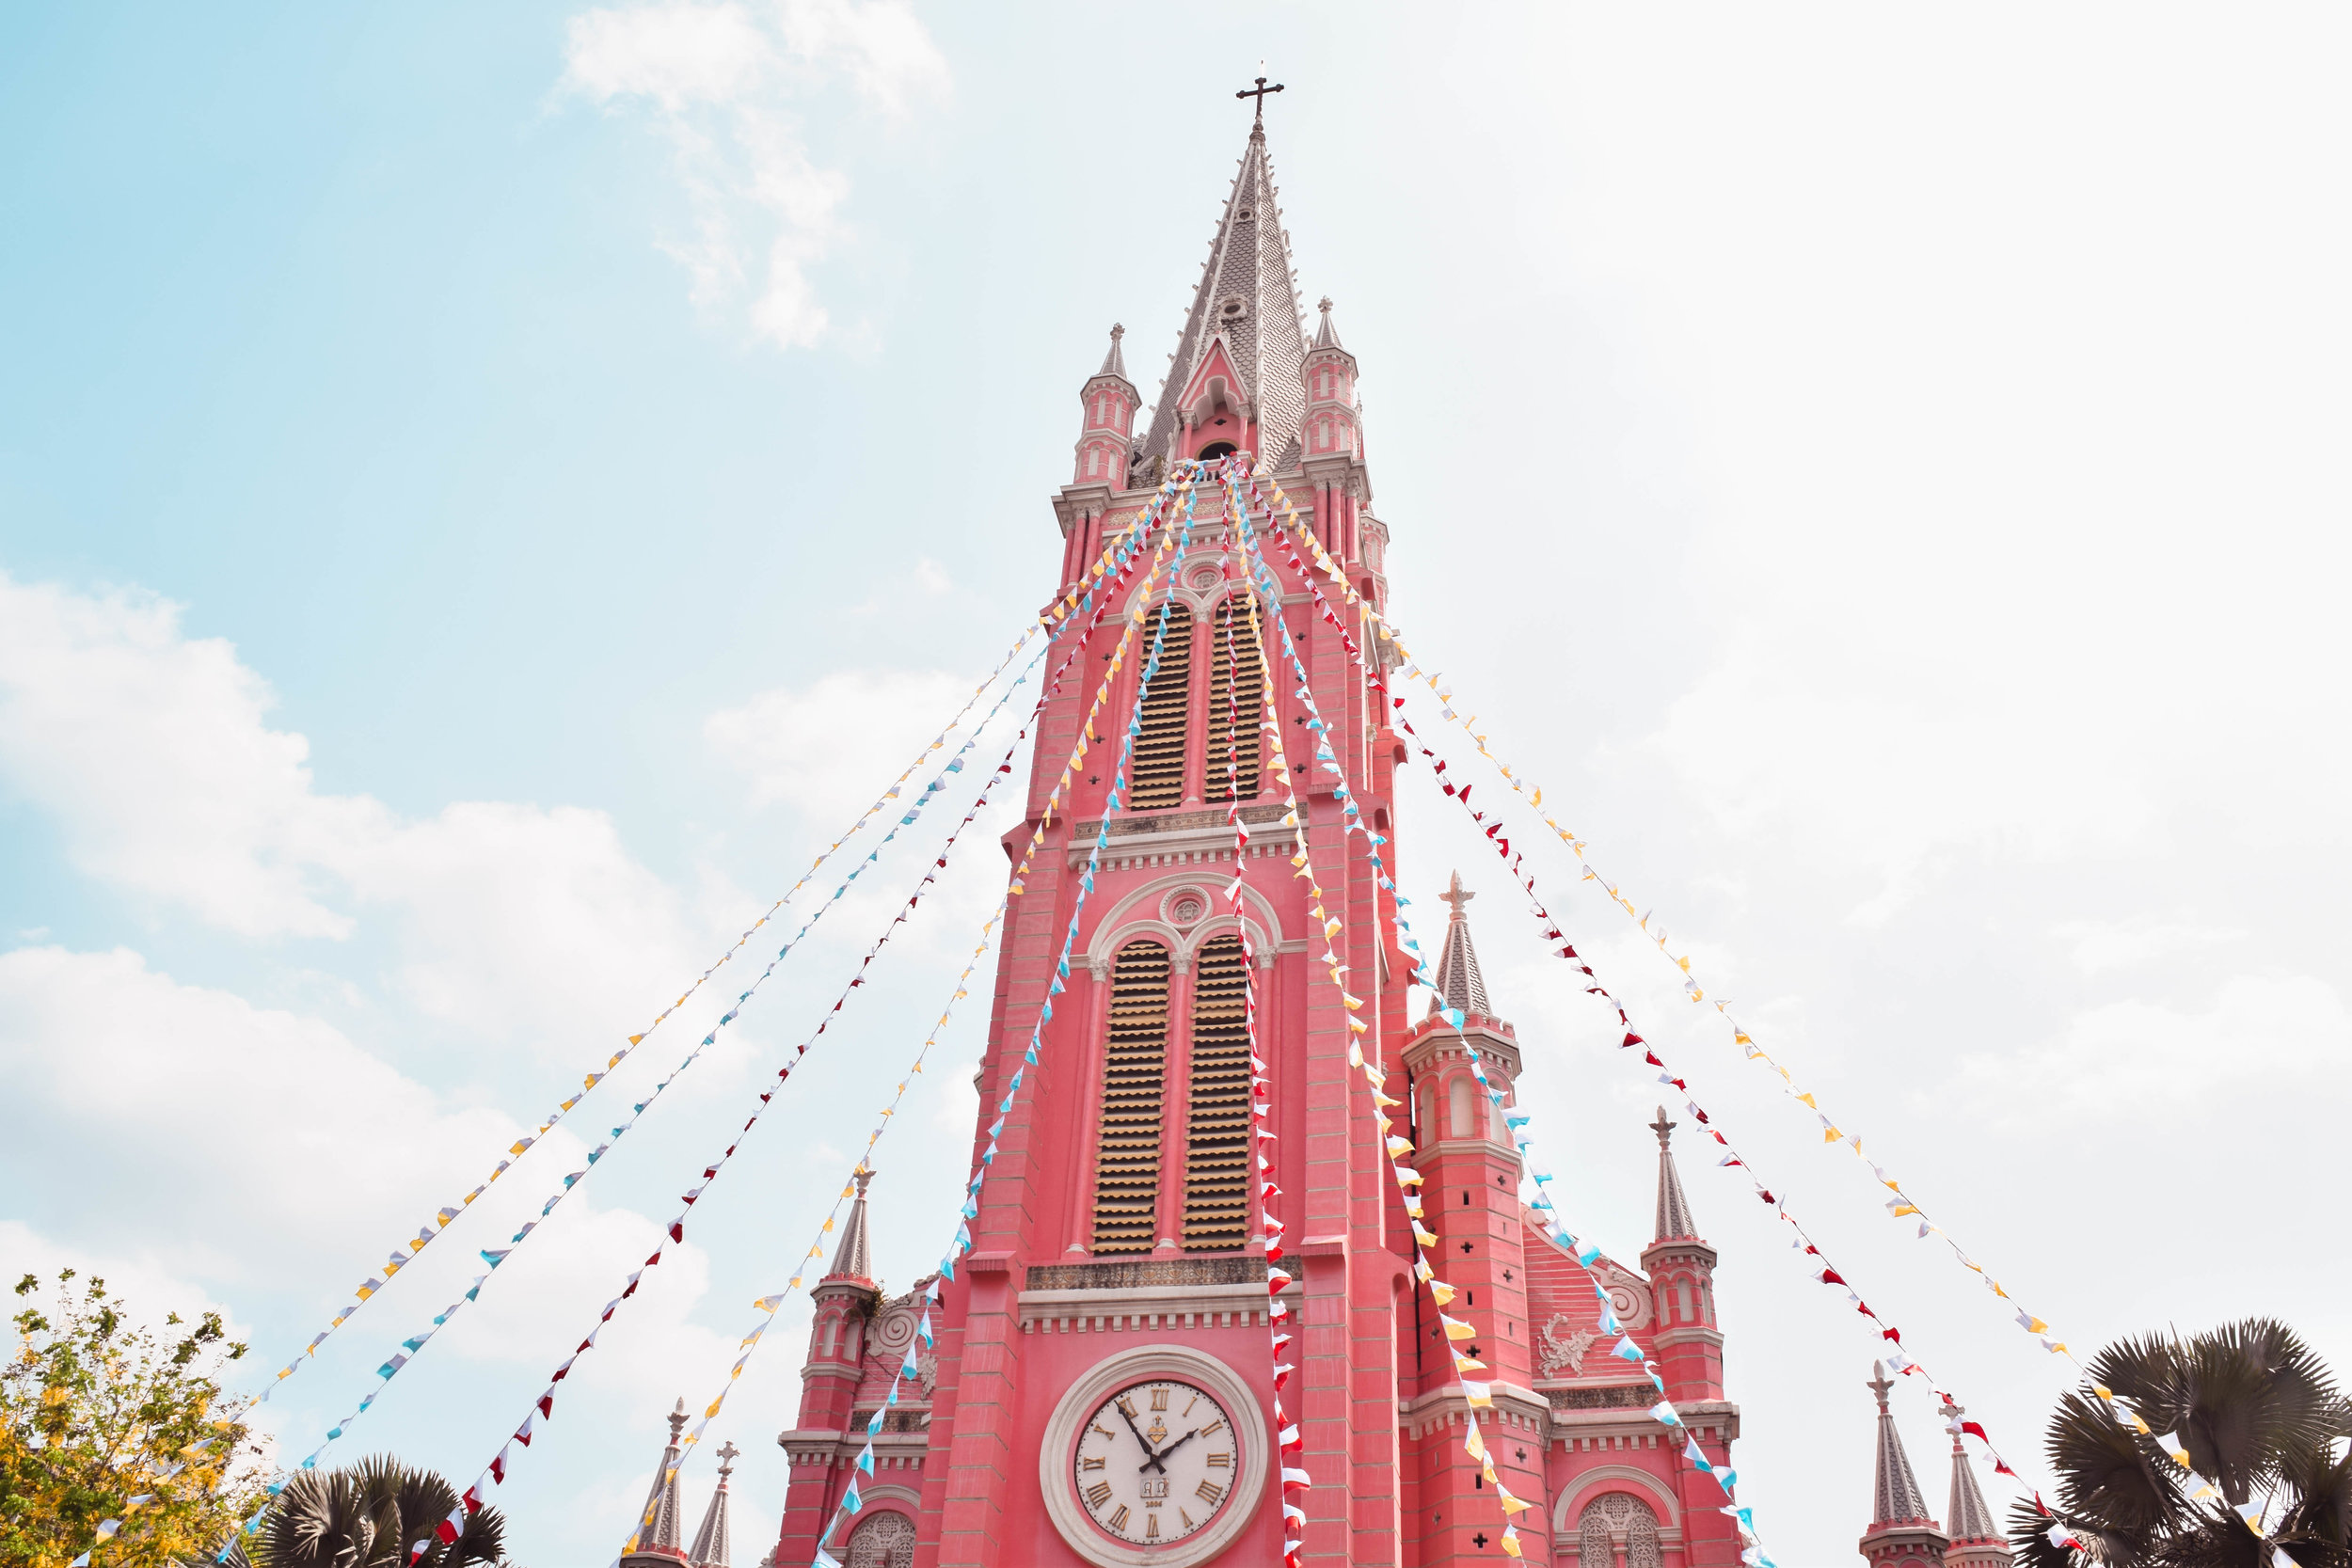 Tan Dinh Church, Saigon's infamous pink cathedral and one of the coolest structures in town.